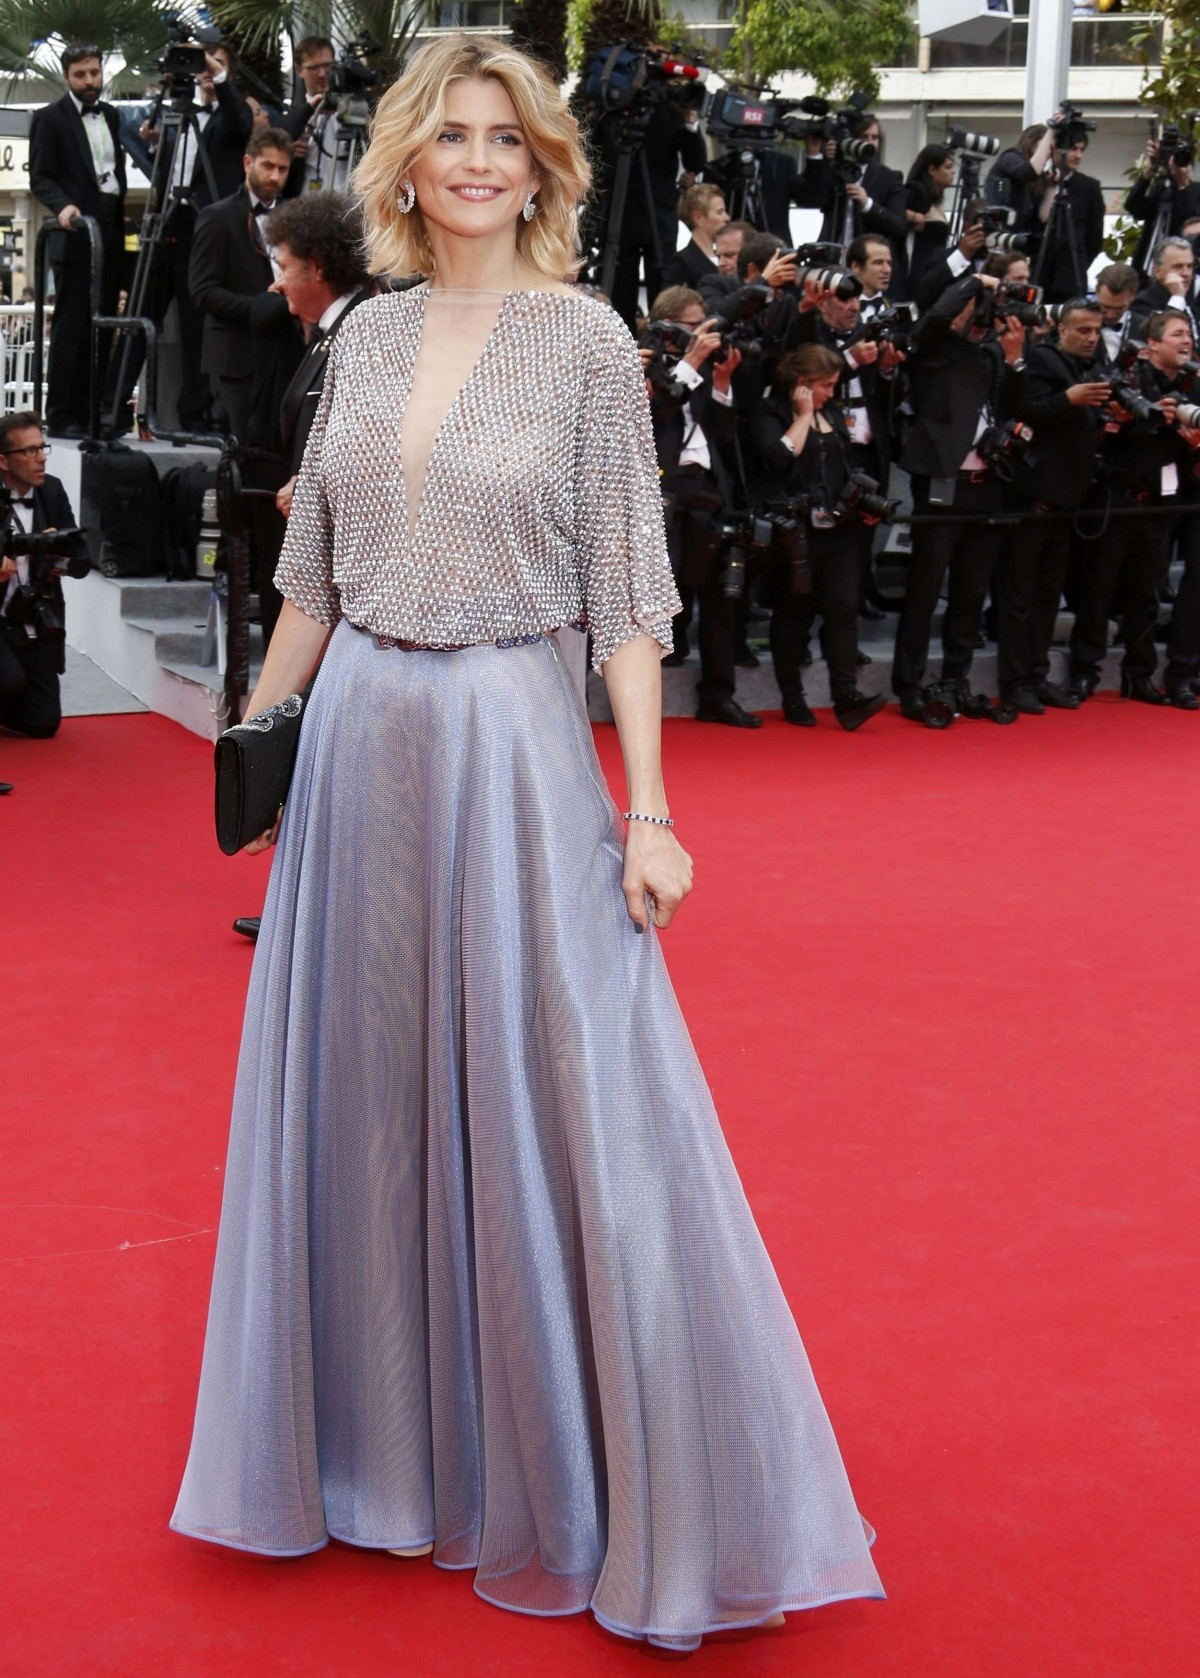 Actress Alice Taglioni poses on the red carpet as she arrives for the opening ceremony and the screening of the film